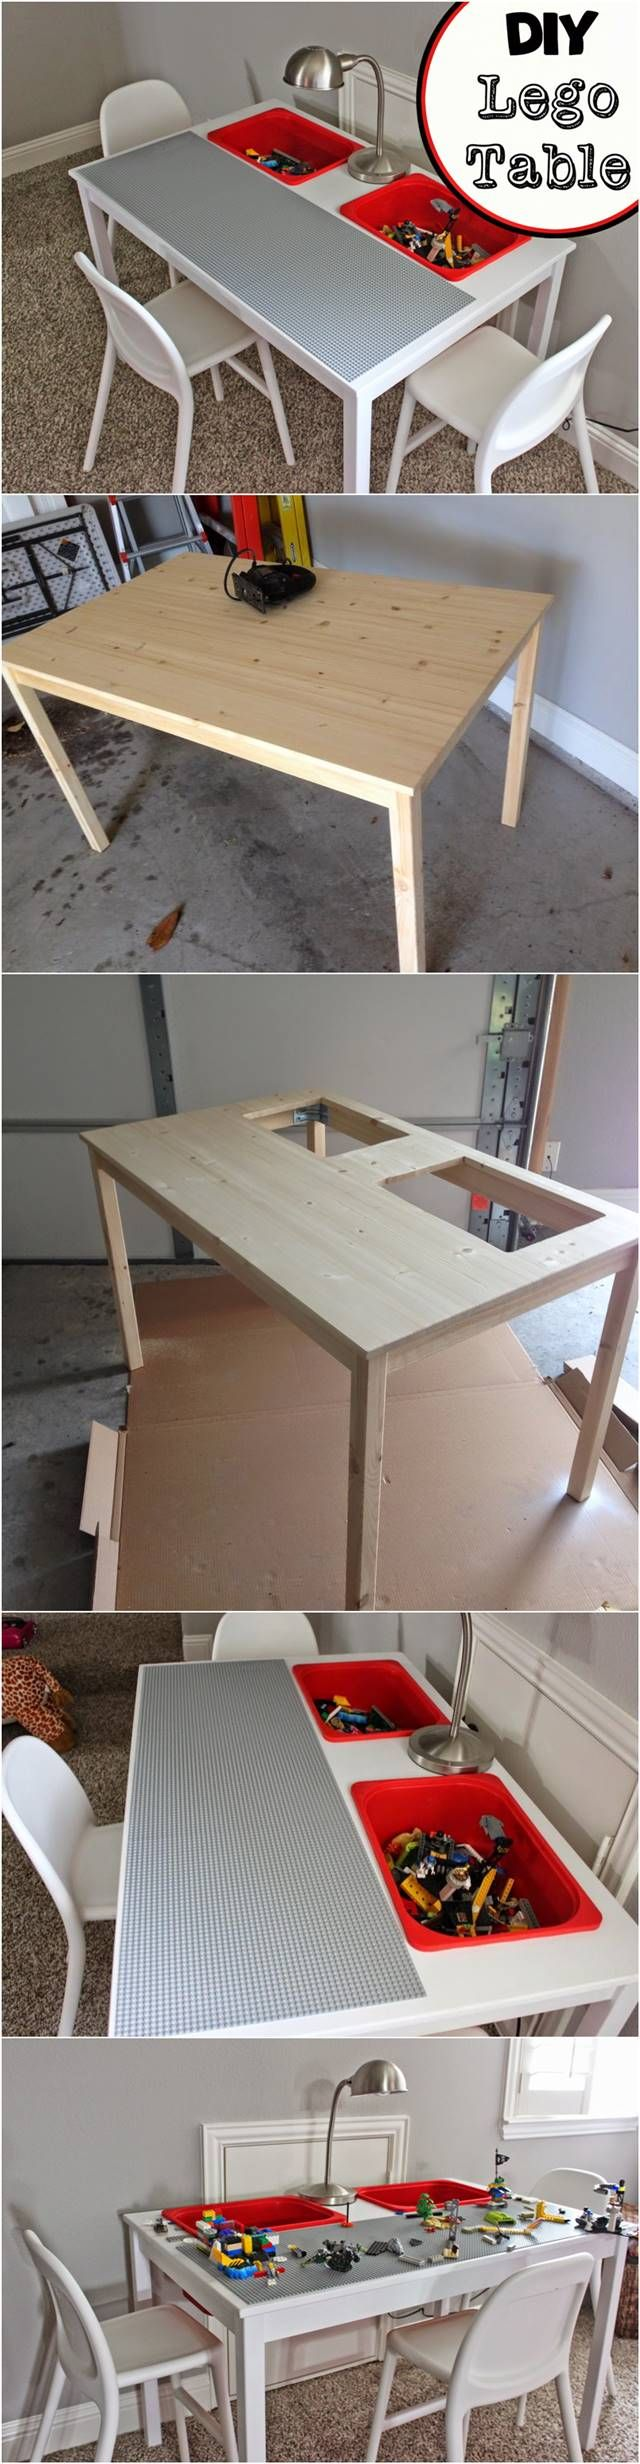 Transform An Ikea Table Into A Lego Kids Will Love It Furniture Hack